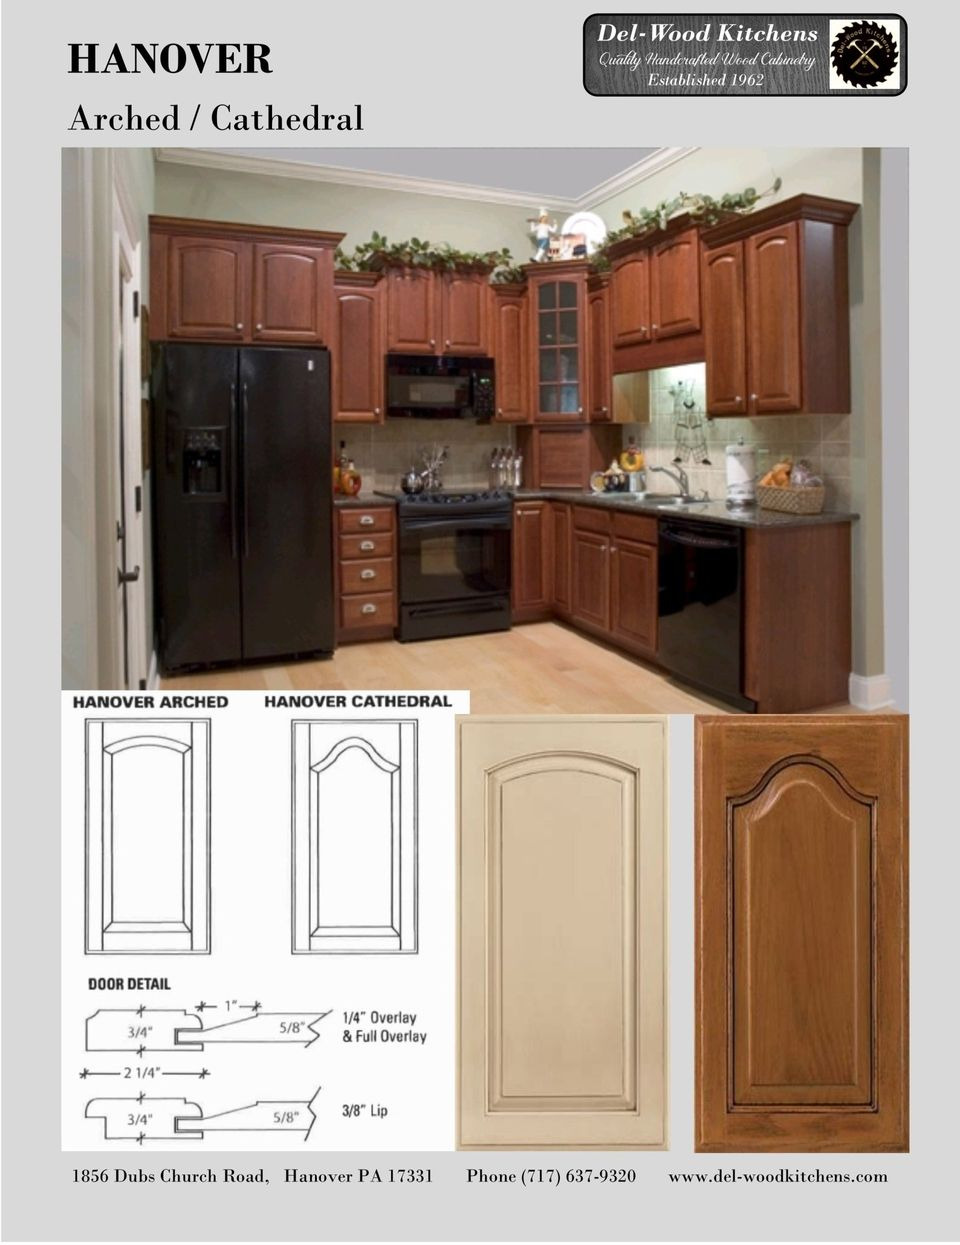 Doors Hanover Arched 960w